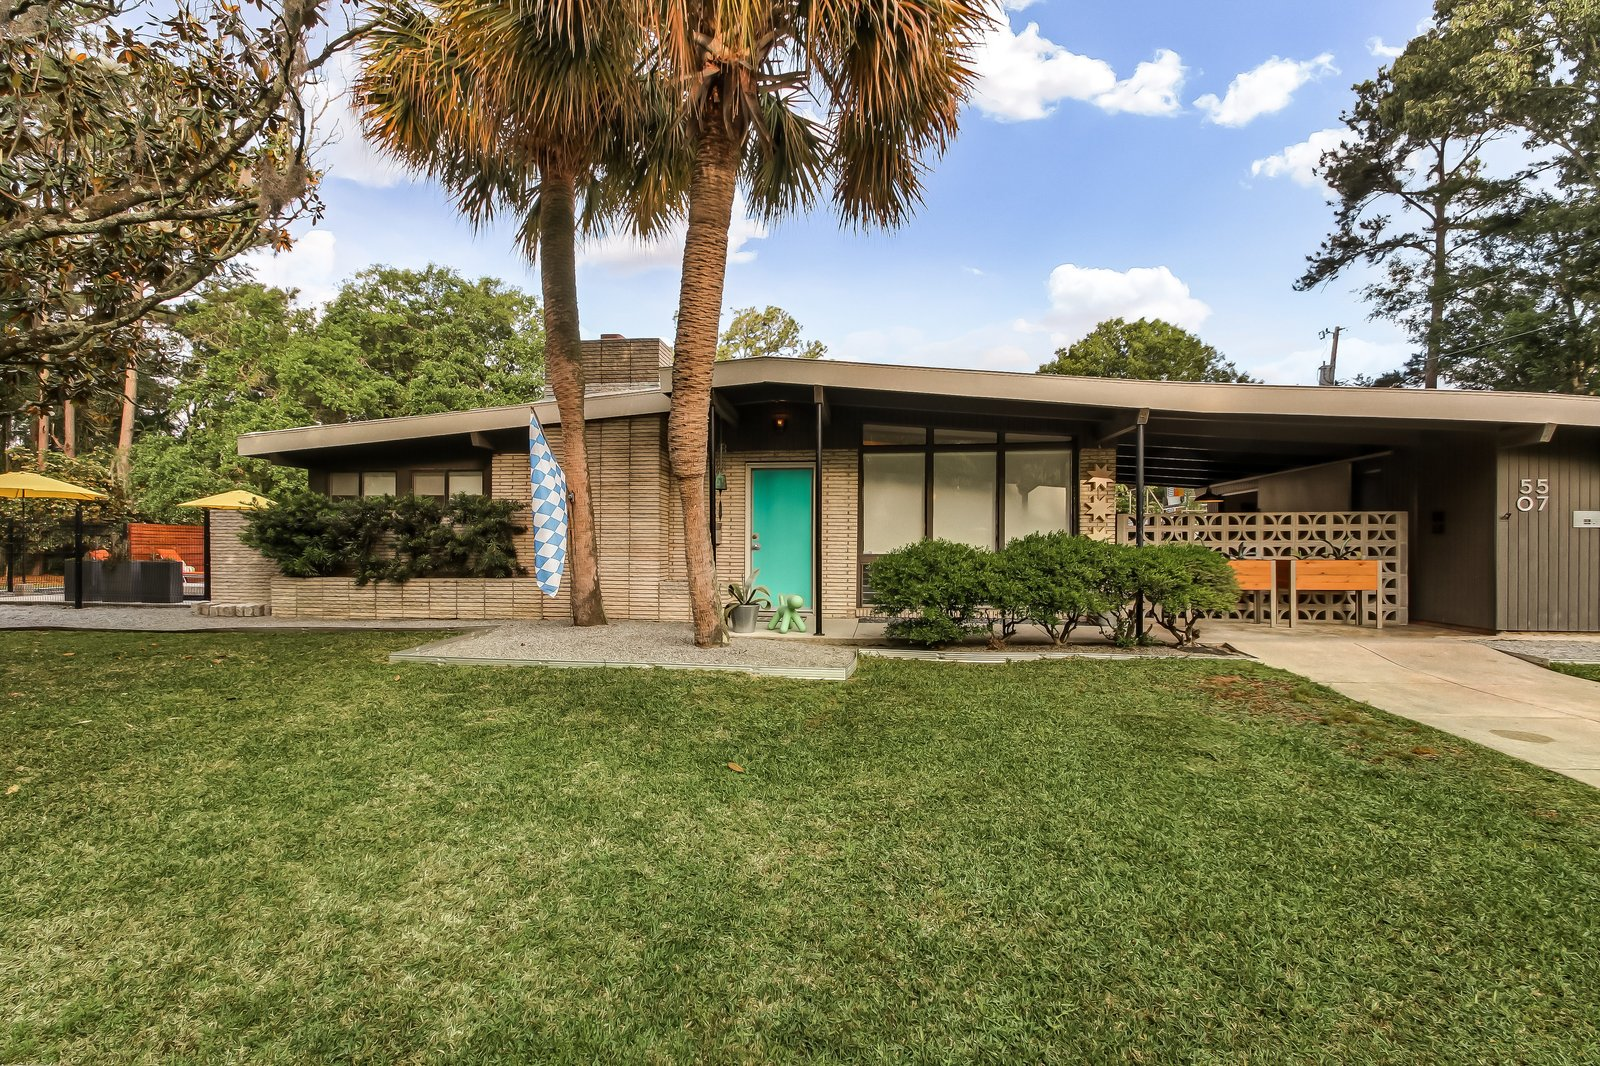 Exterior, Mid-Century, Brick, Glass, House, and Wood The stylish midcentury has an elegant profile.     Best Exterior Glass Brick Wood Photos from A Carefully Restored Midcentury Hits the Market at $415K in Savannah, Georgia